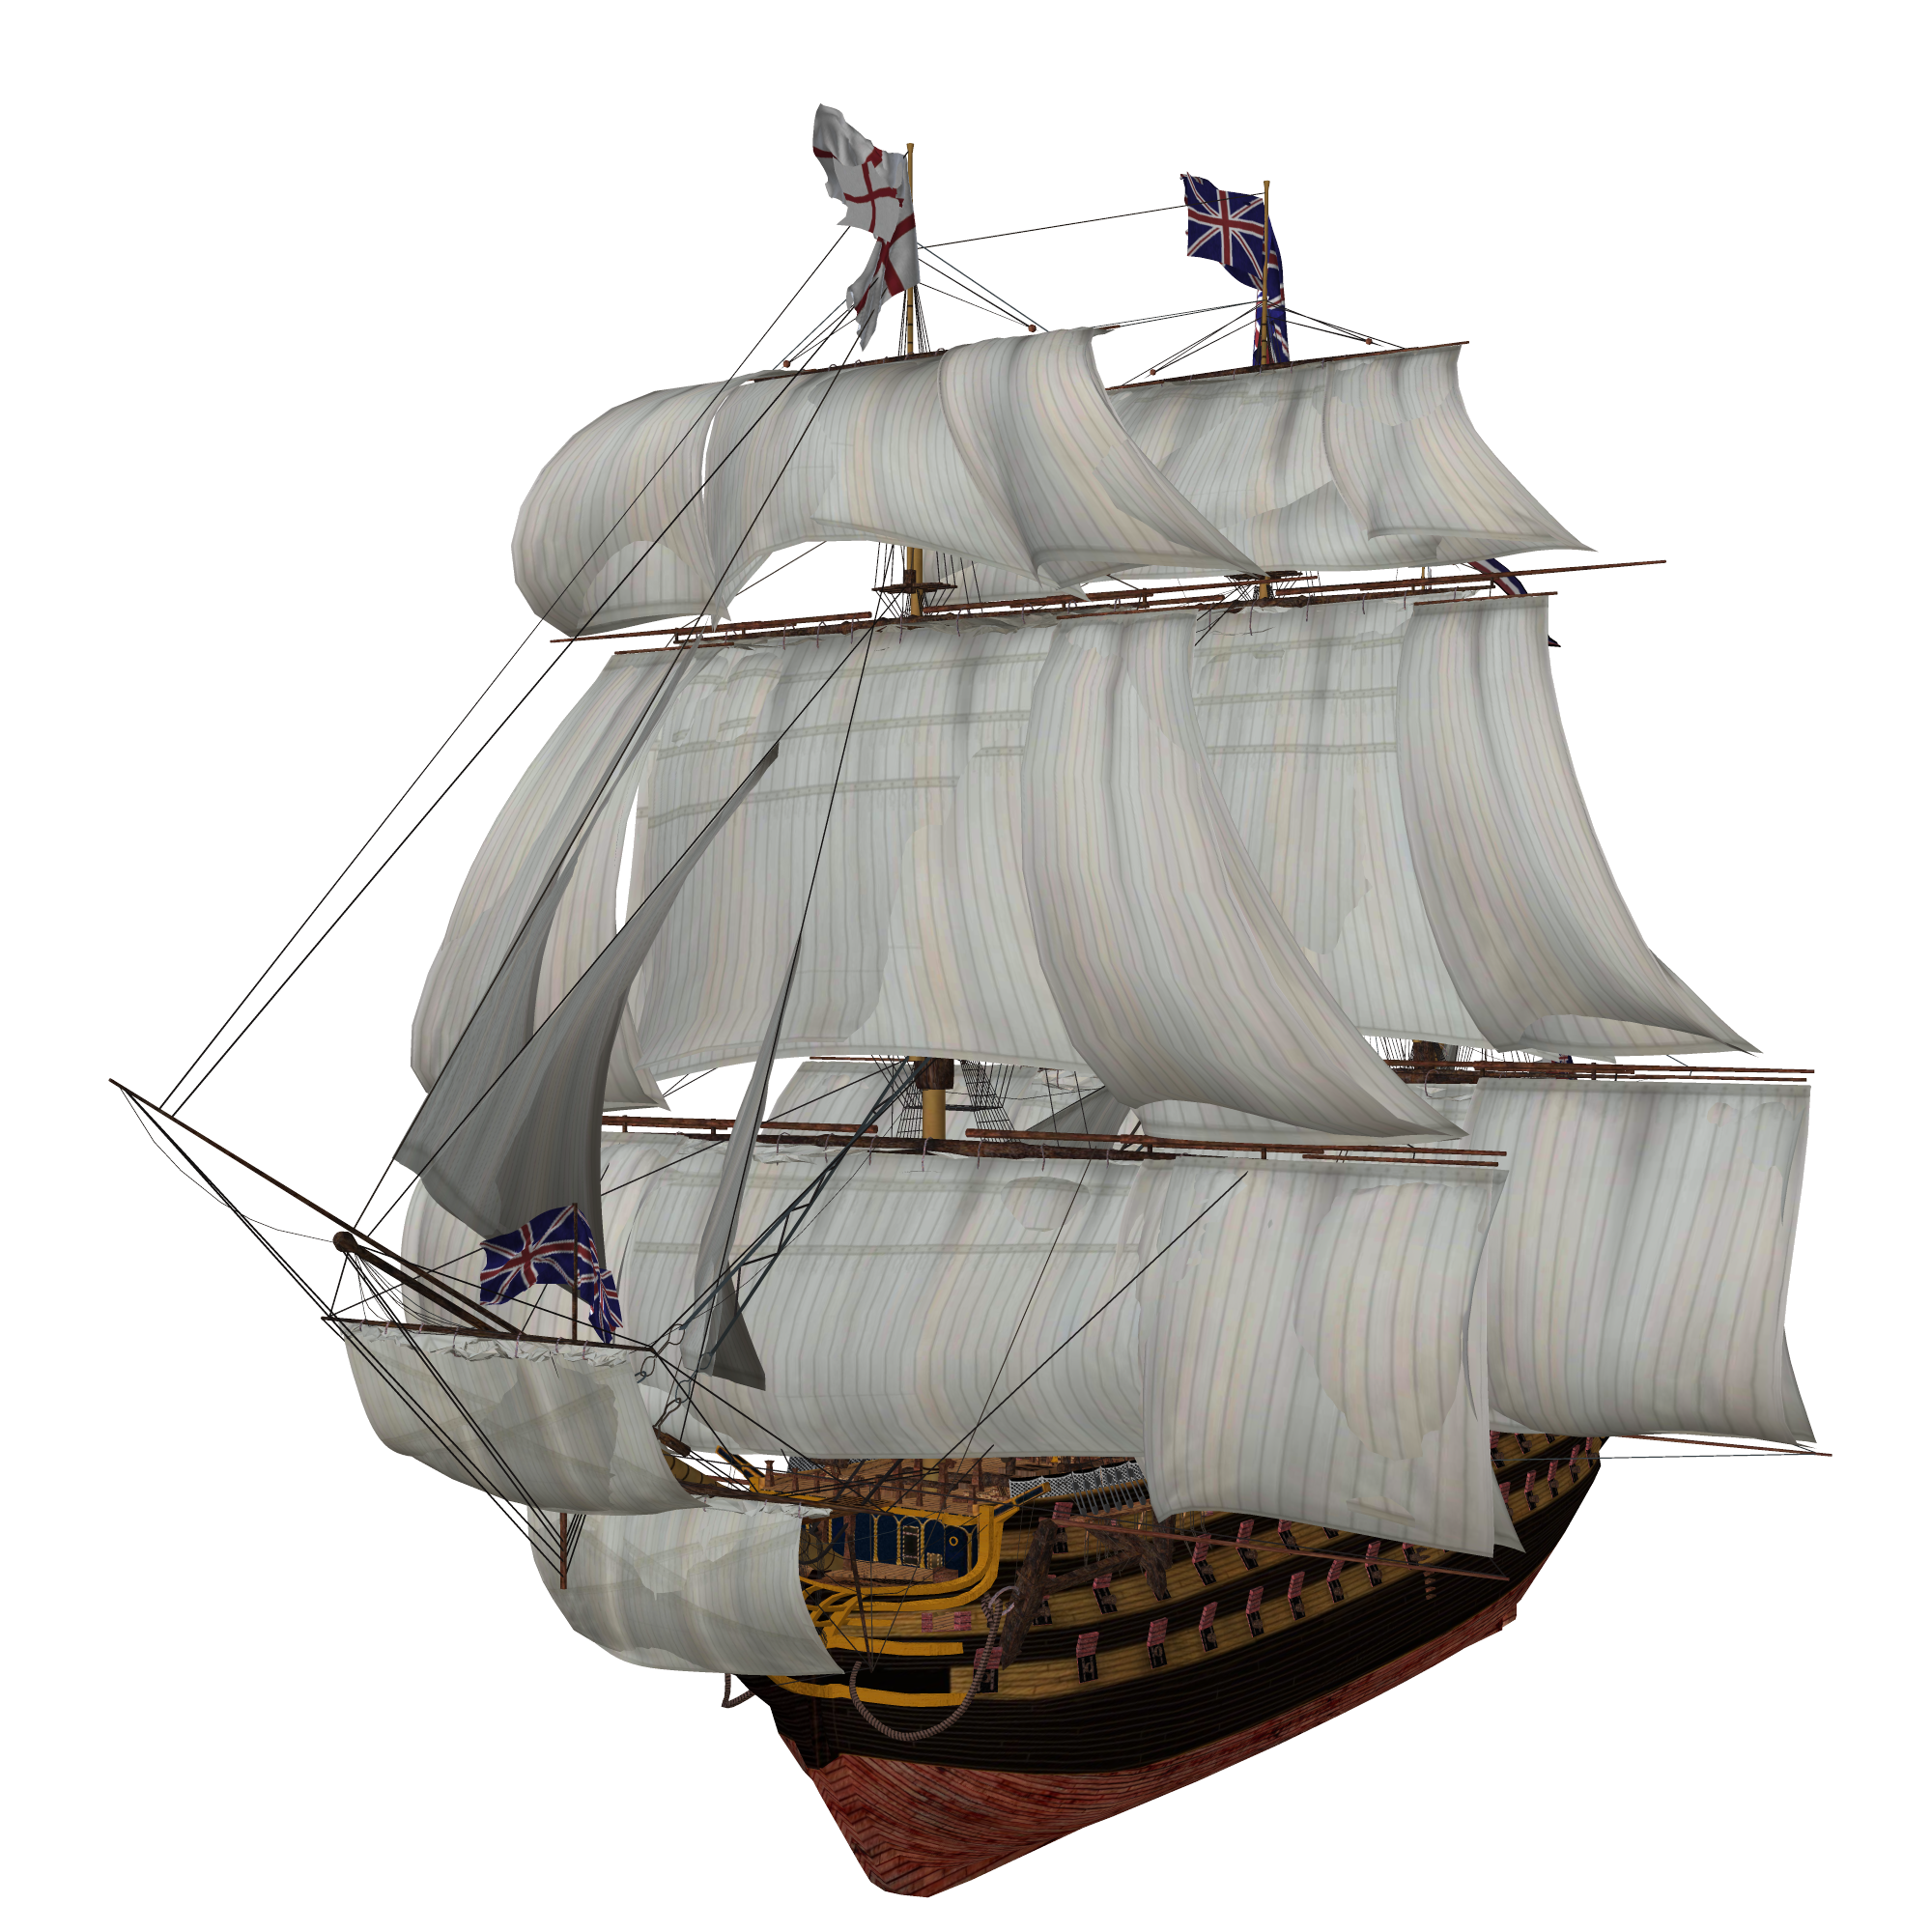 Free pirate ship png. Hd transparent images pluspng